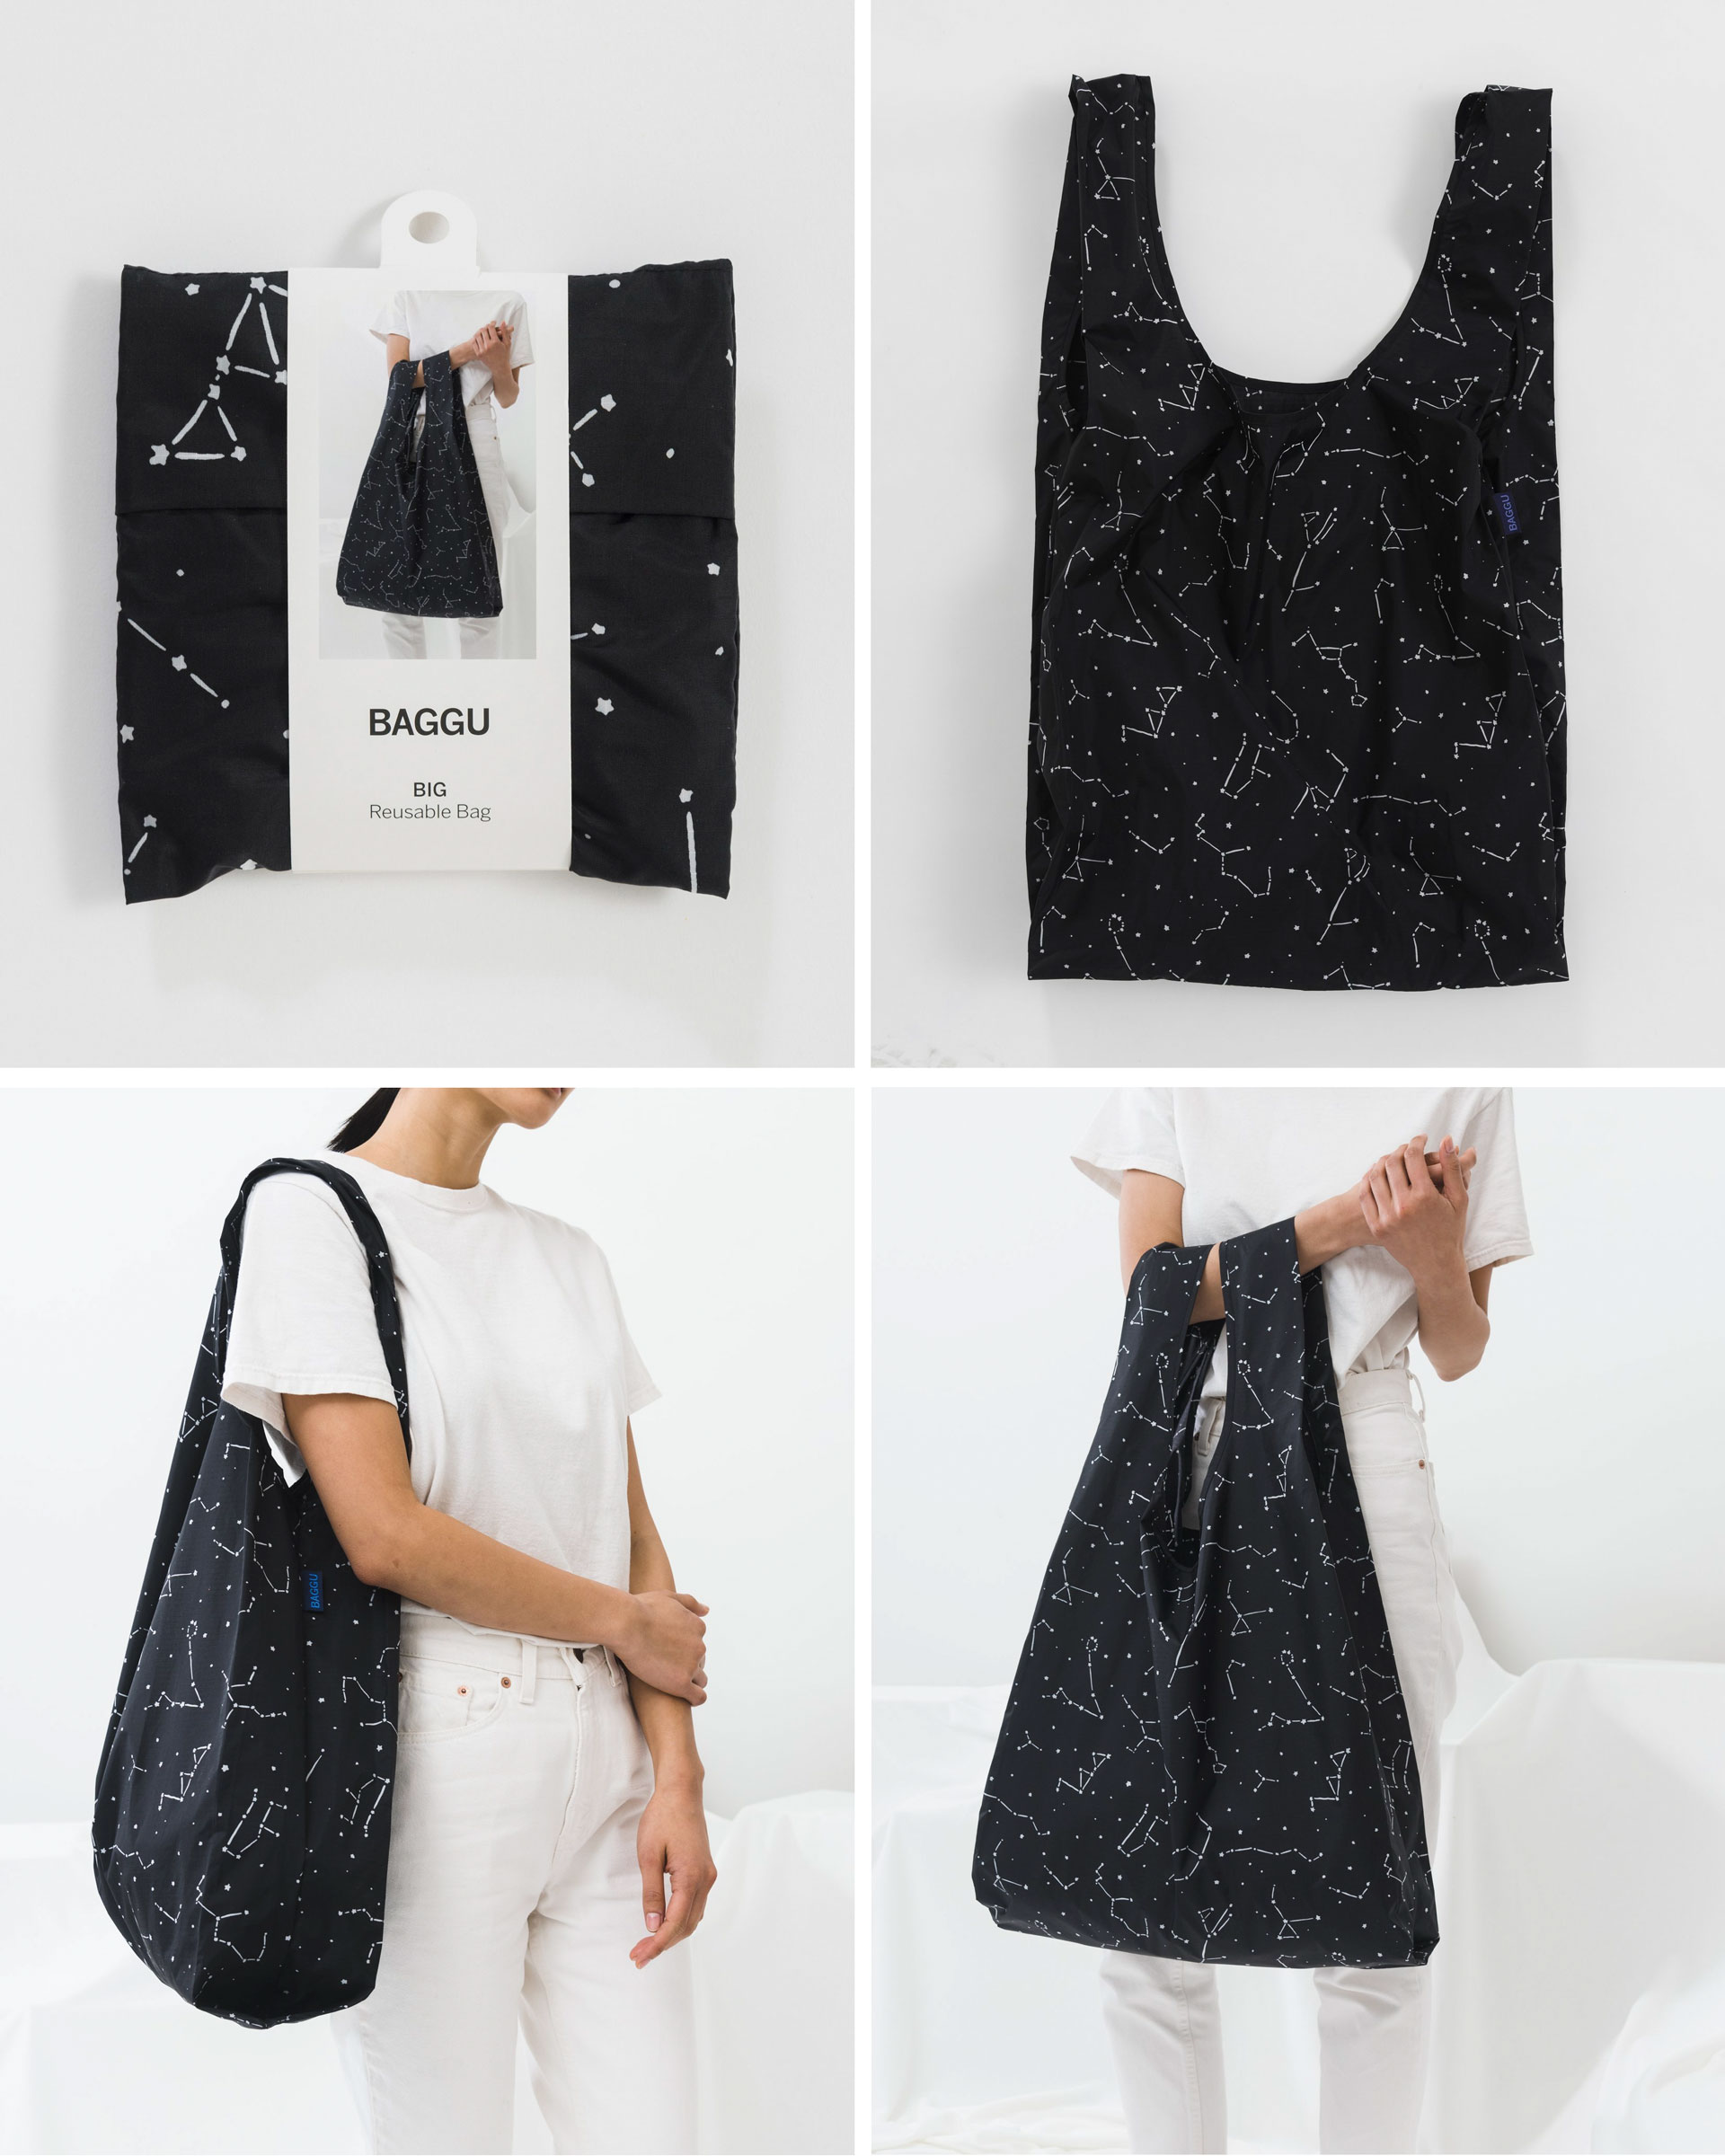 reusable-shopping-bag-baggu-constellation-black-big.jpg